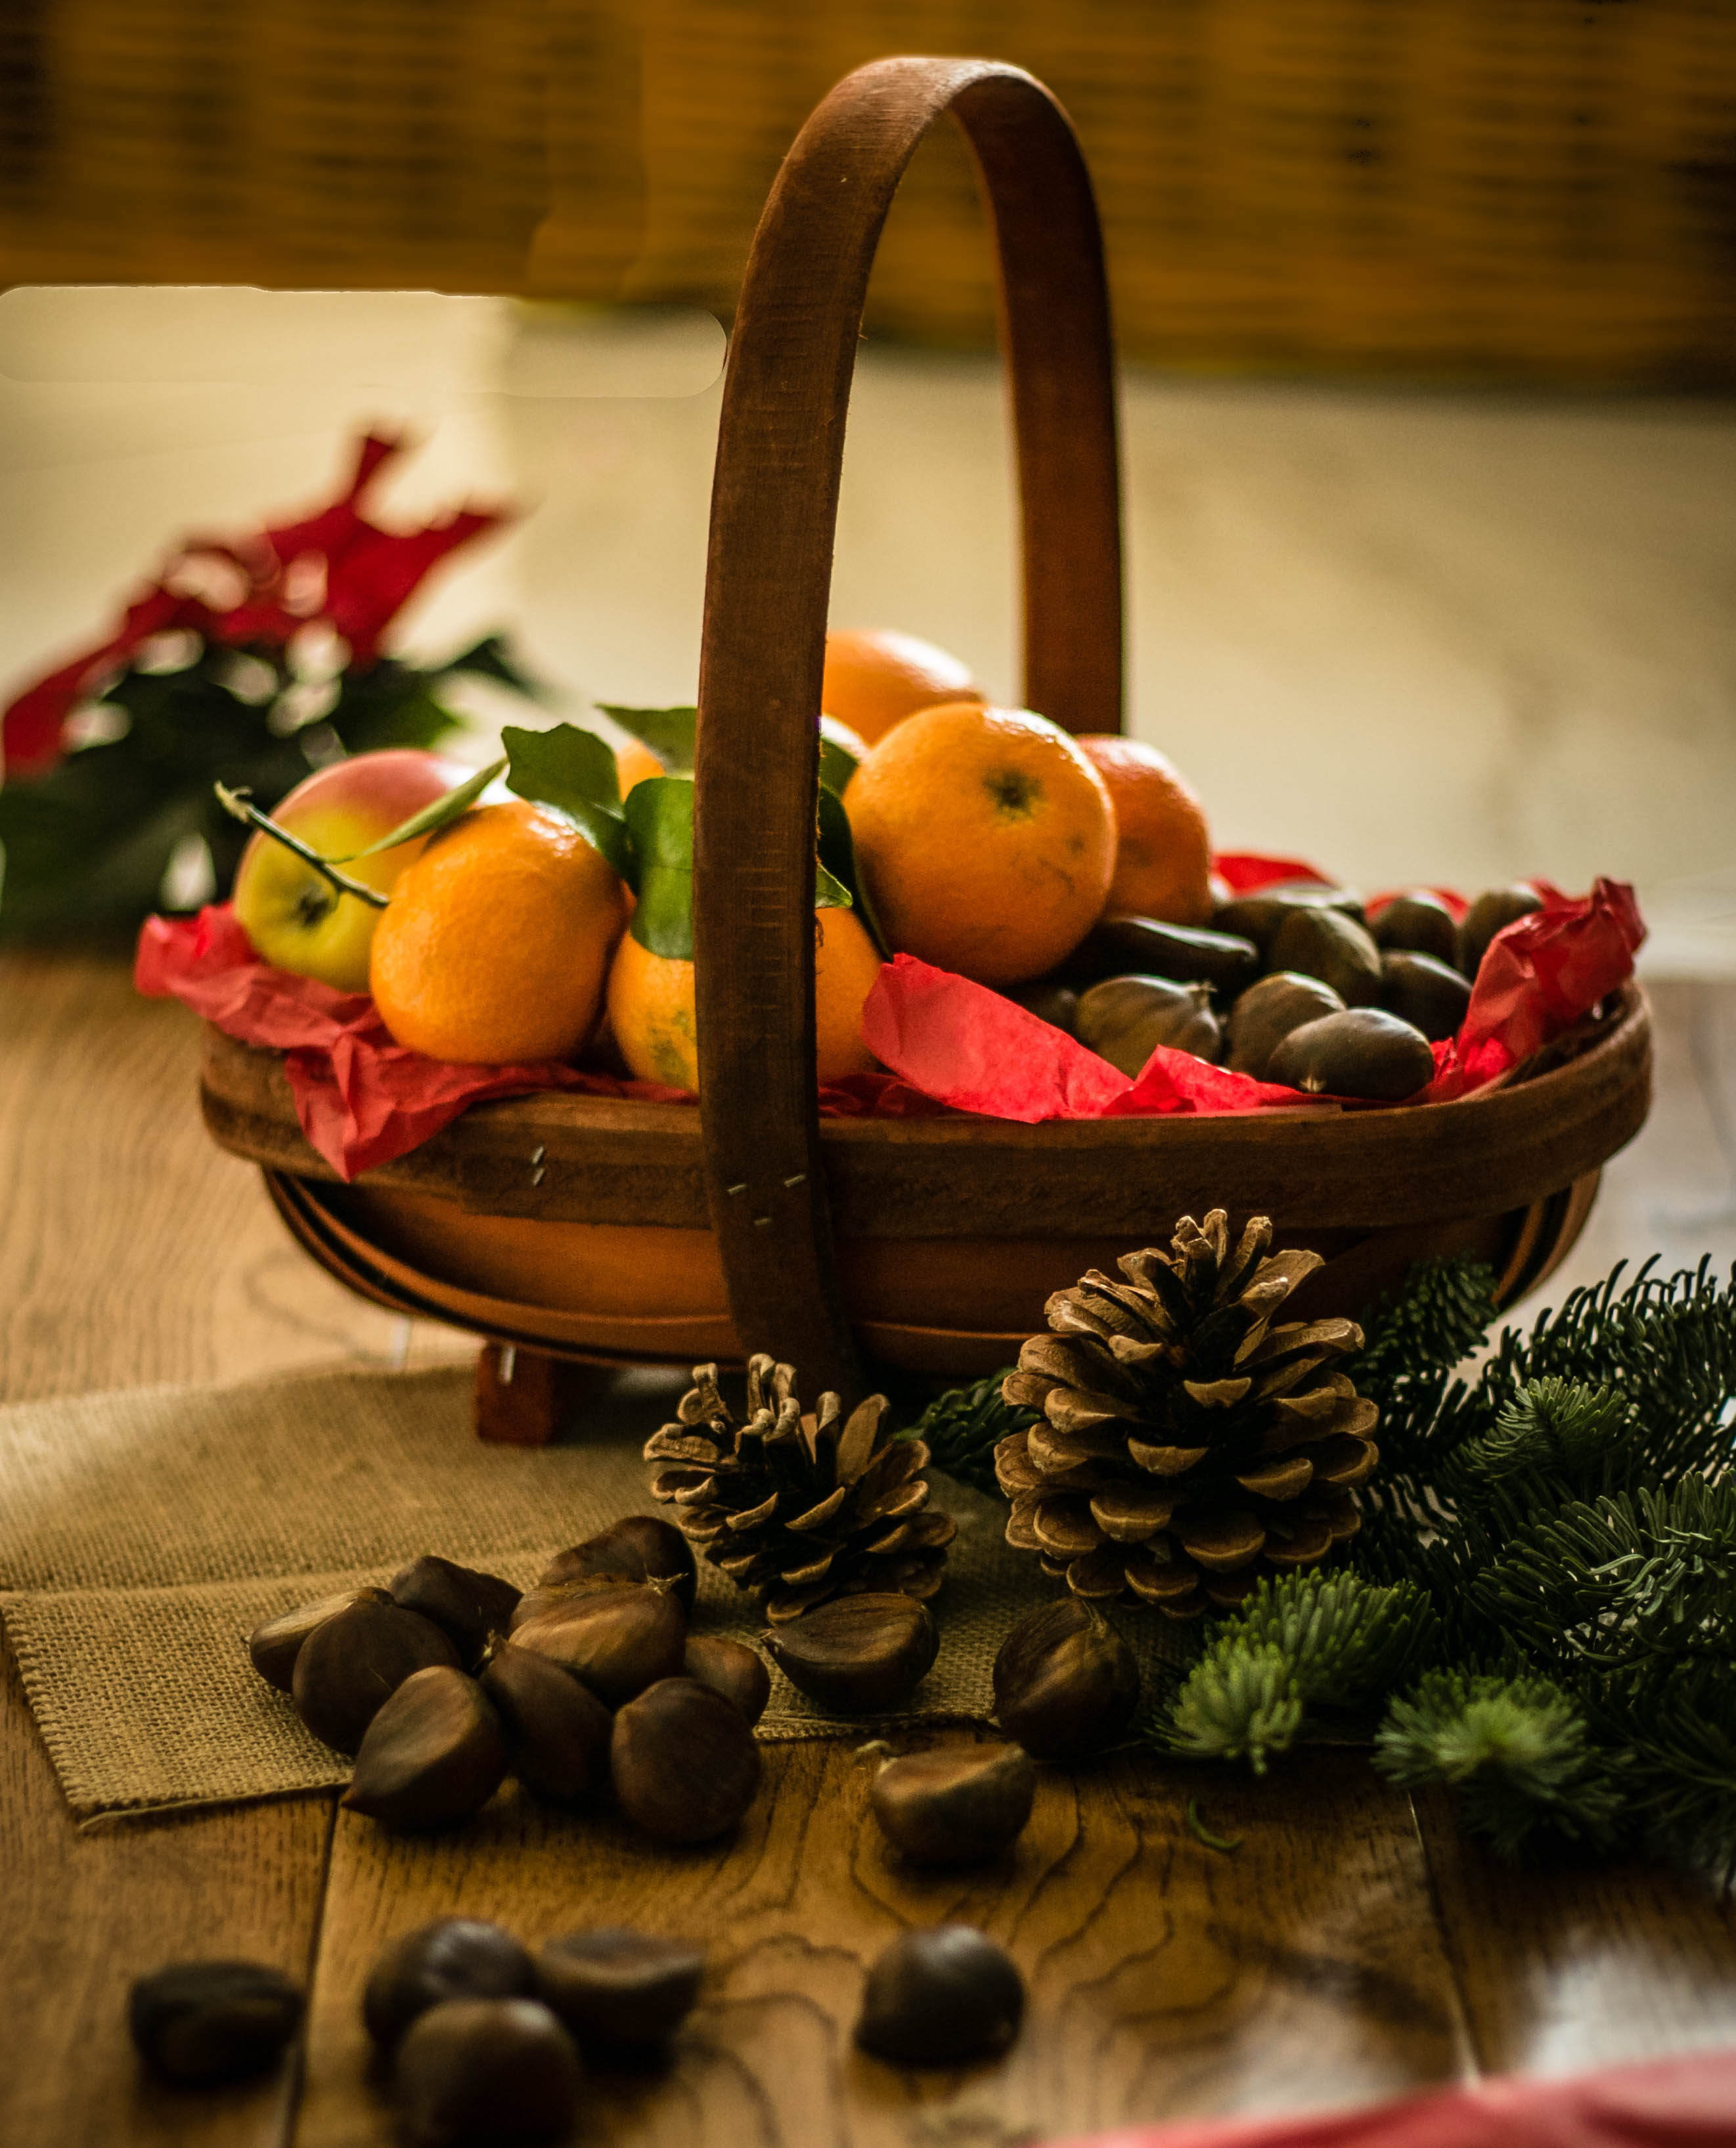 Christmas Flowers and Fruit Decorations